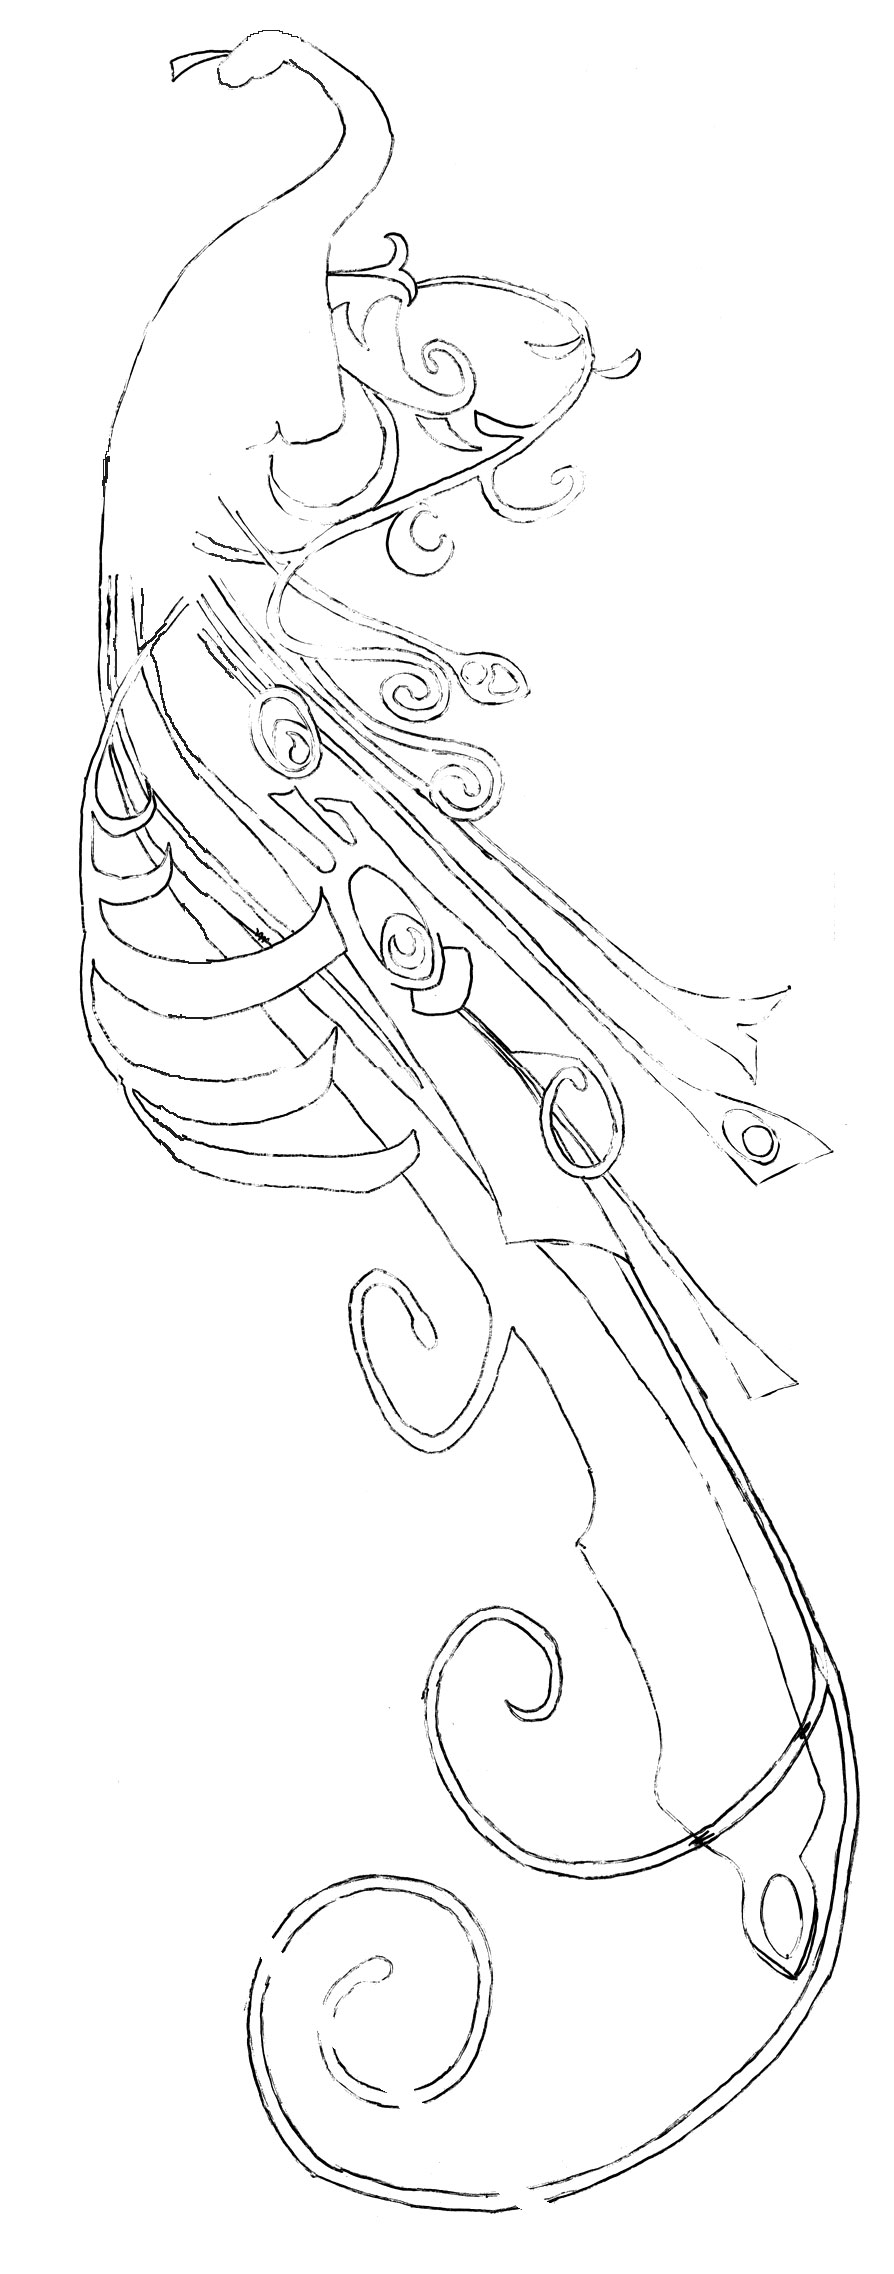 Coloring pages for quiver - Or Here For Larger